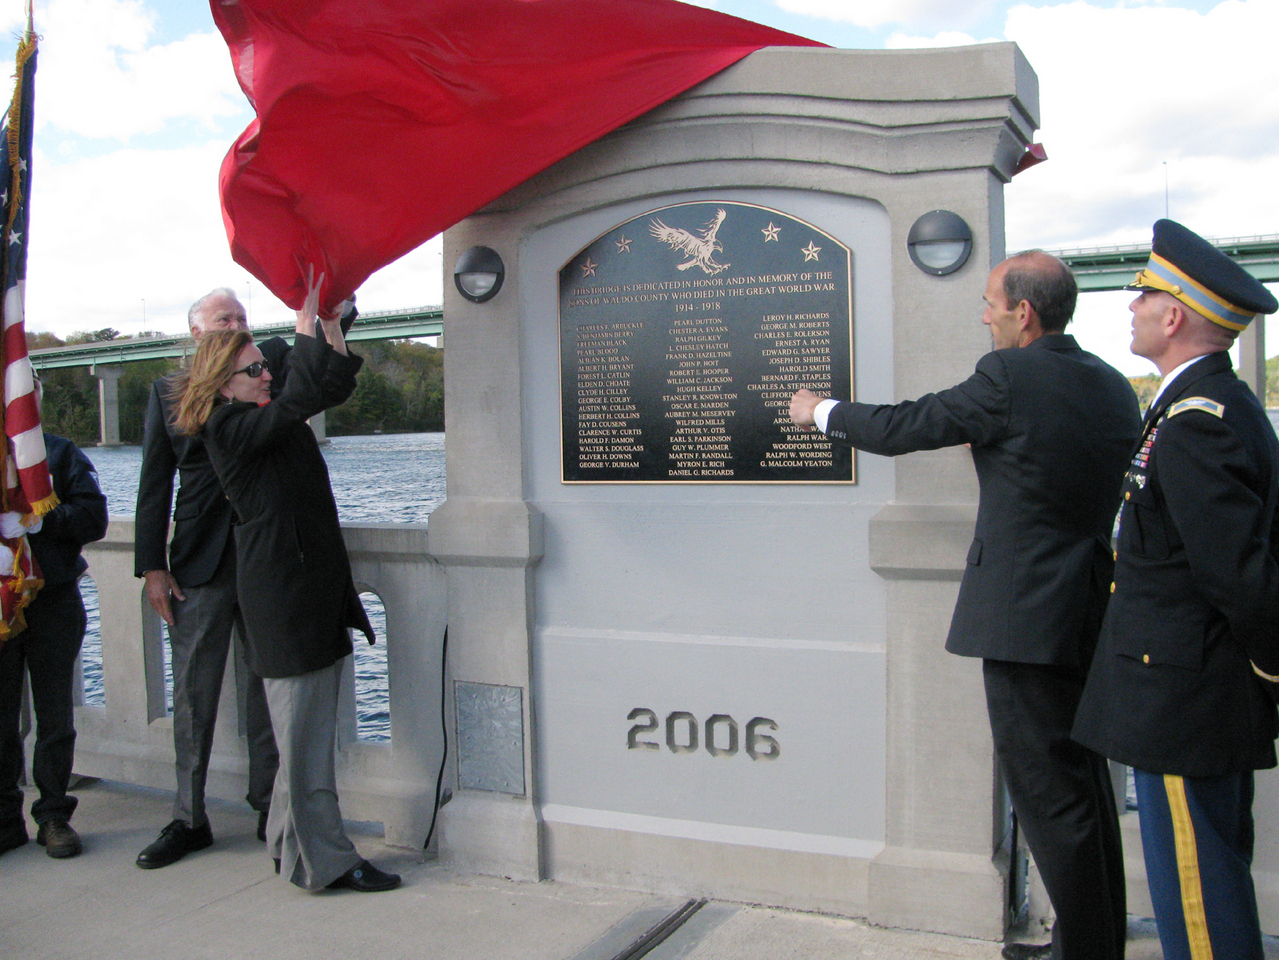 Tammy Lacher Scully and Gov. John Baldacci pull a red cover off the new bronze memorial plaque on Armistice Bridge in Belfast on Friday, Oct. 8 during the re-dedication ceremony. (Abigail Curtis/BDN)